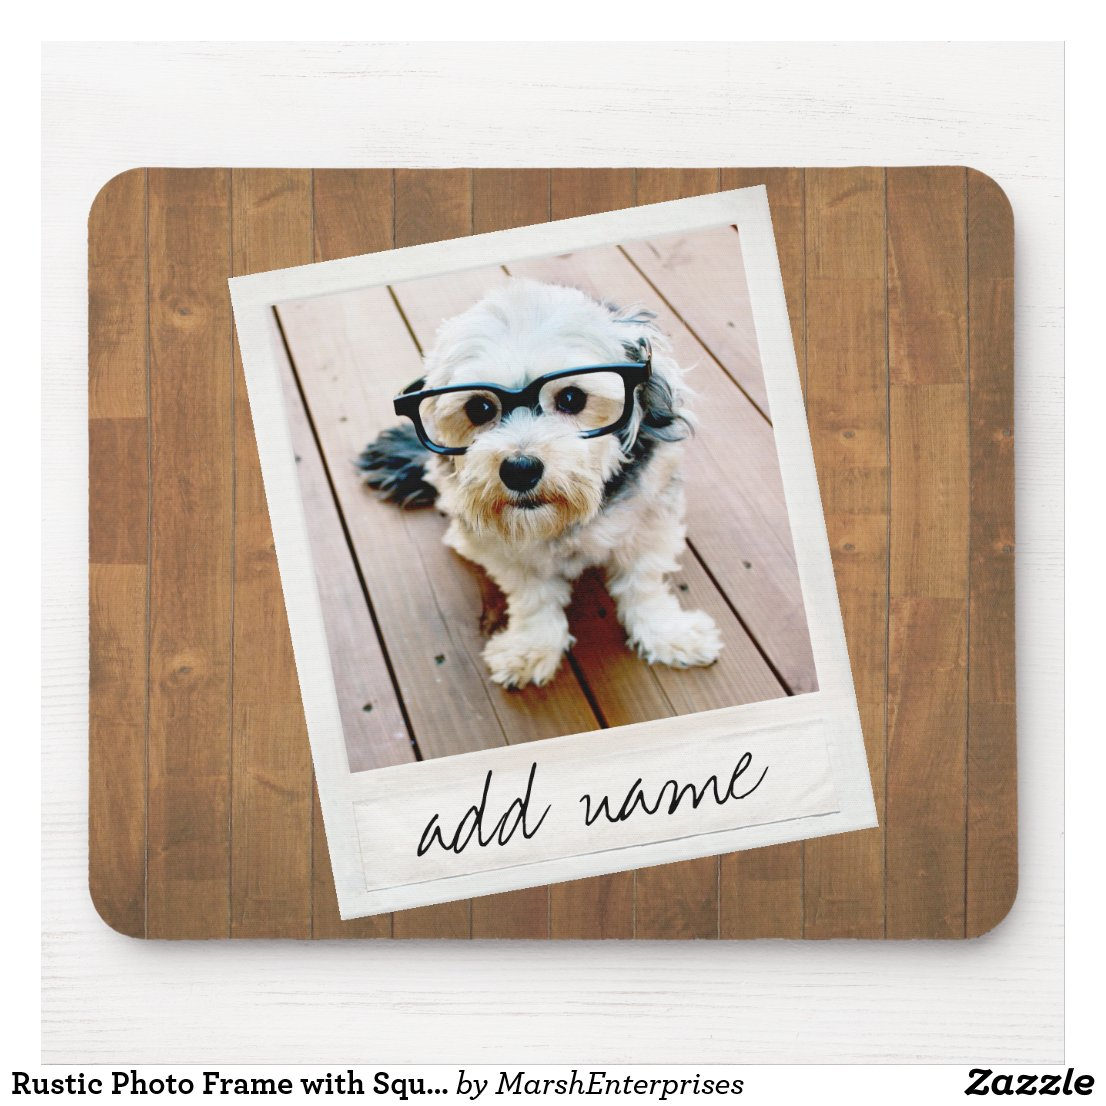 Rustic Photo Frame with Square Instagram and Wood Mouse Mat